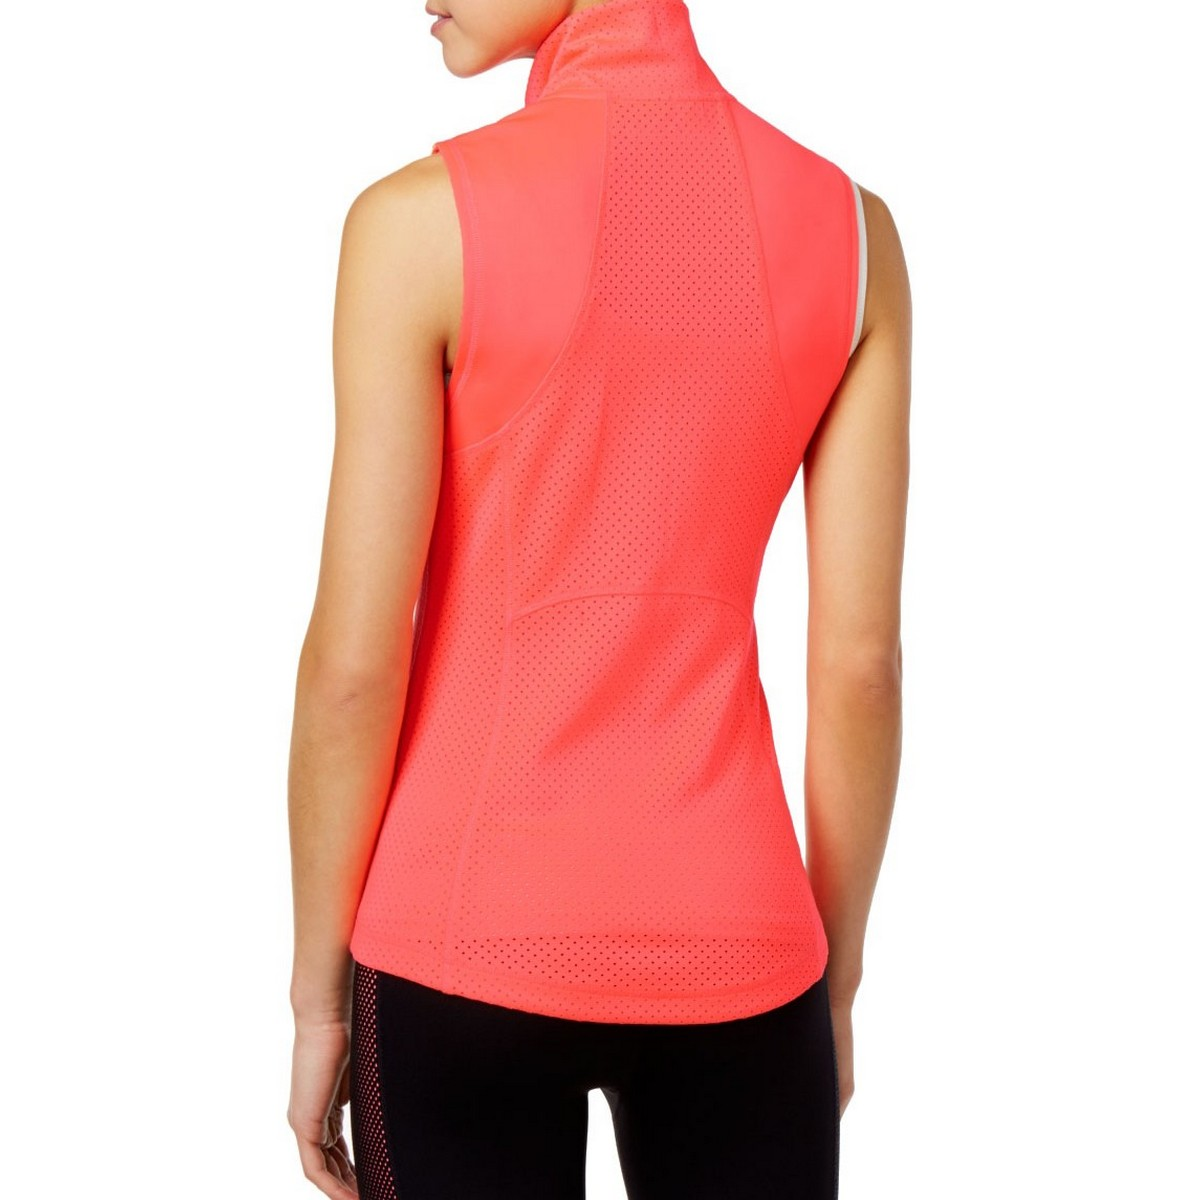 TOMMY HILFIGER SPORT NEW Women/'s Perforated Active Wear Vest Jacket Top TEDO